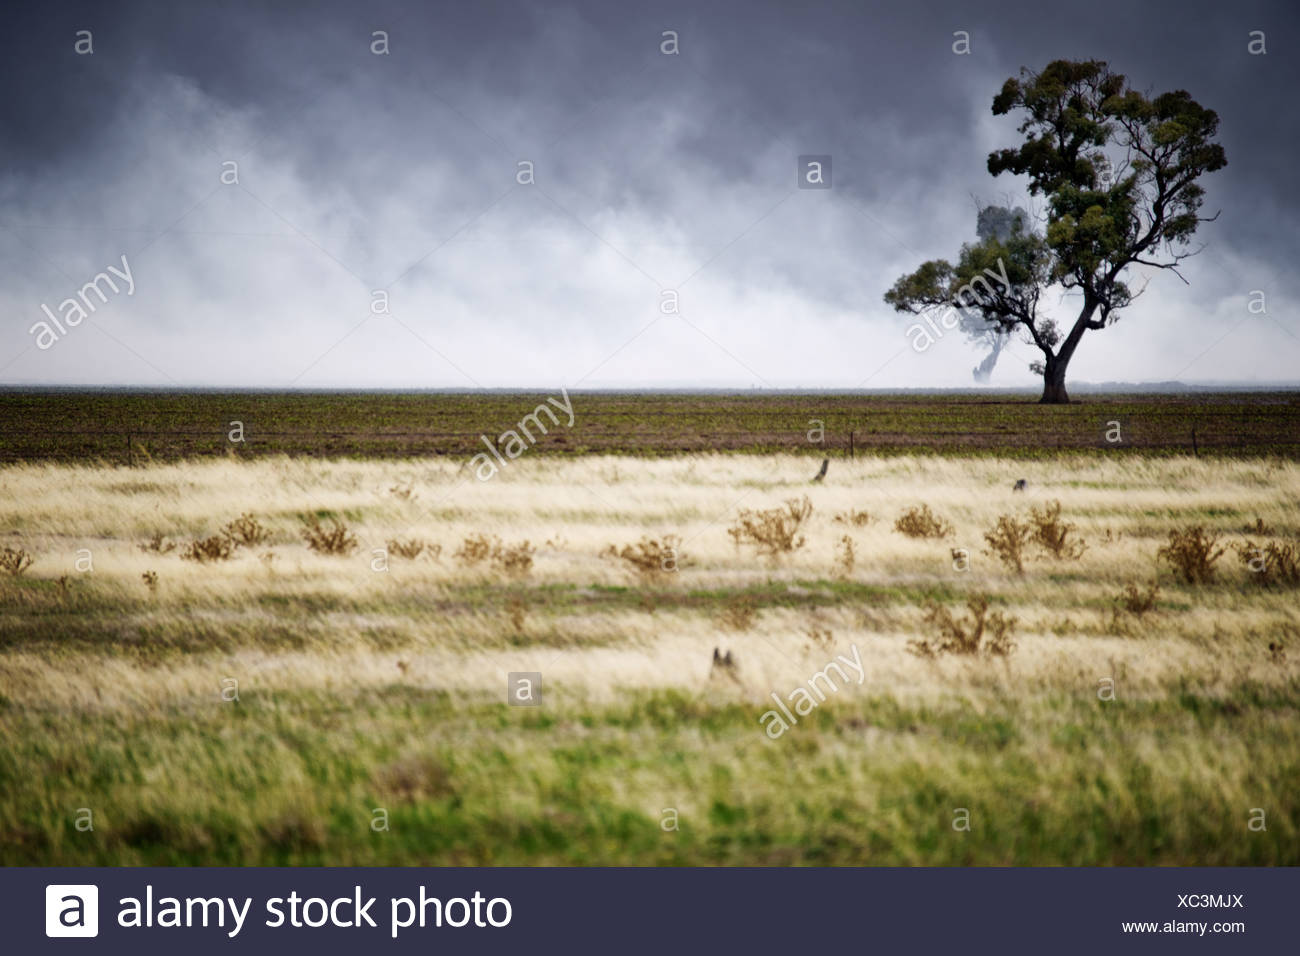 Focus on tree that is about to be enveloped by a fire - Stock Image